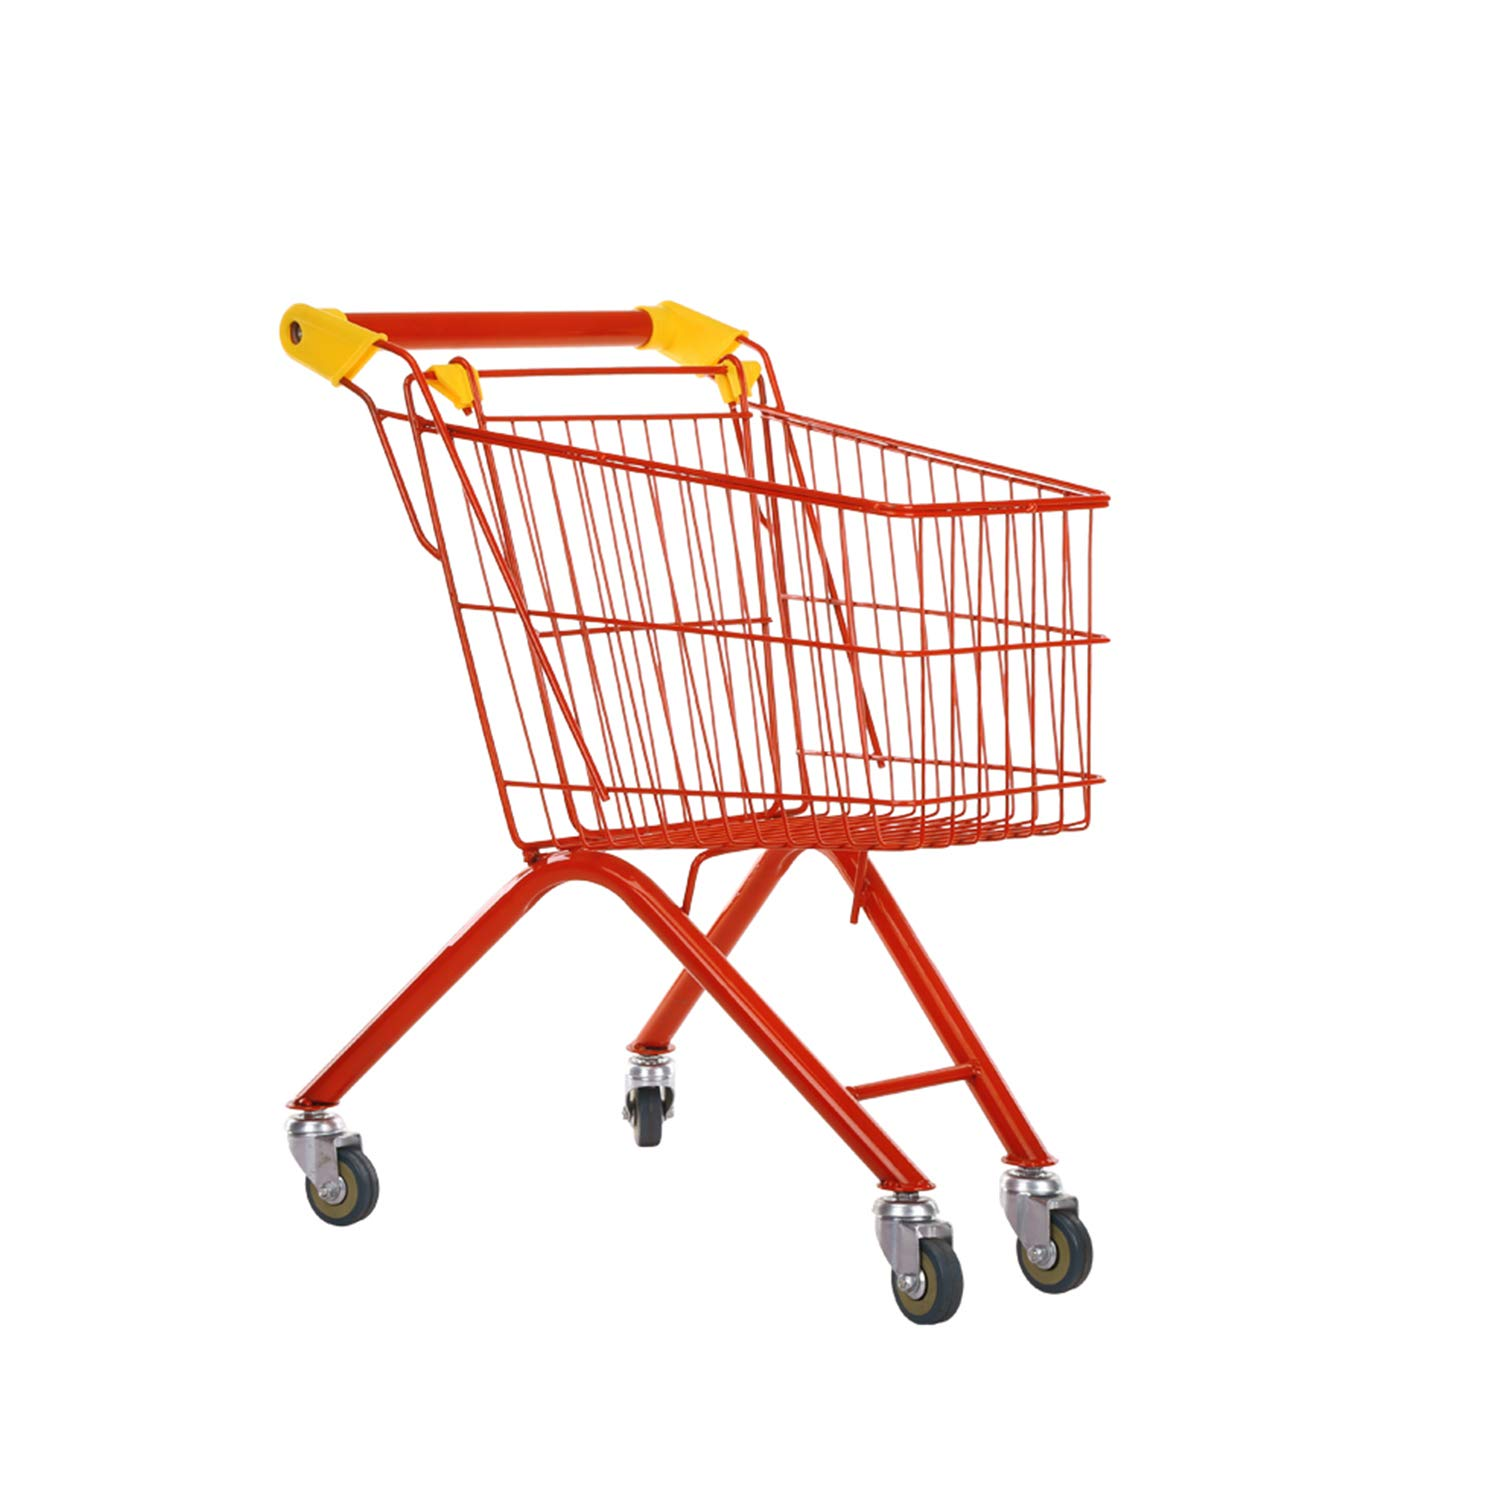 RAINBOW TOYFROG Kids Shopping cart-Toy Grocery Trolley for Pretend Play-Study Metal Steel Frame with Beautiful Colors by RAINBOW TOYFROG